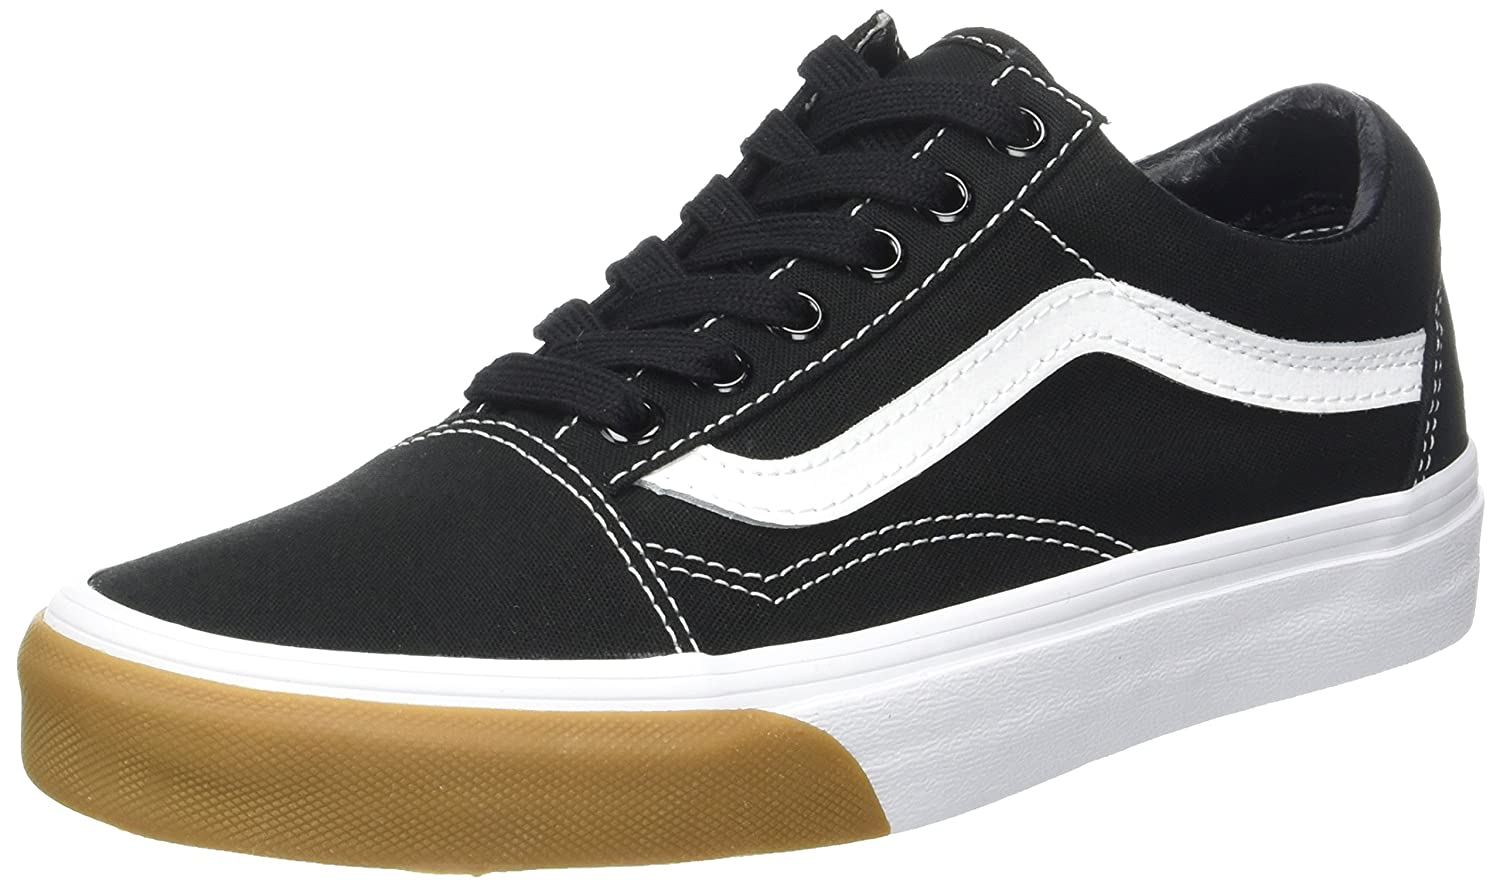 Vans Unisex Old Skool Classic Skate Shoes B000NSH6W4 16 D(M) US|Black White